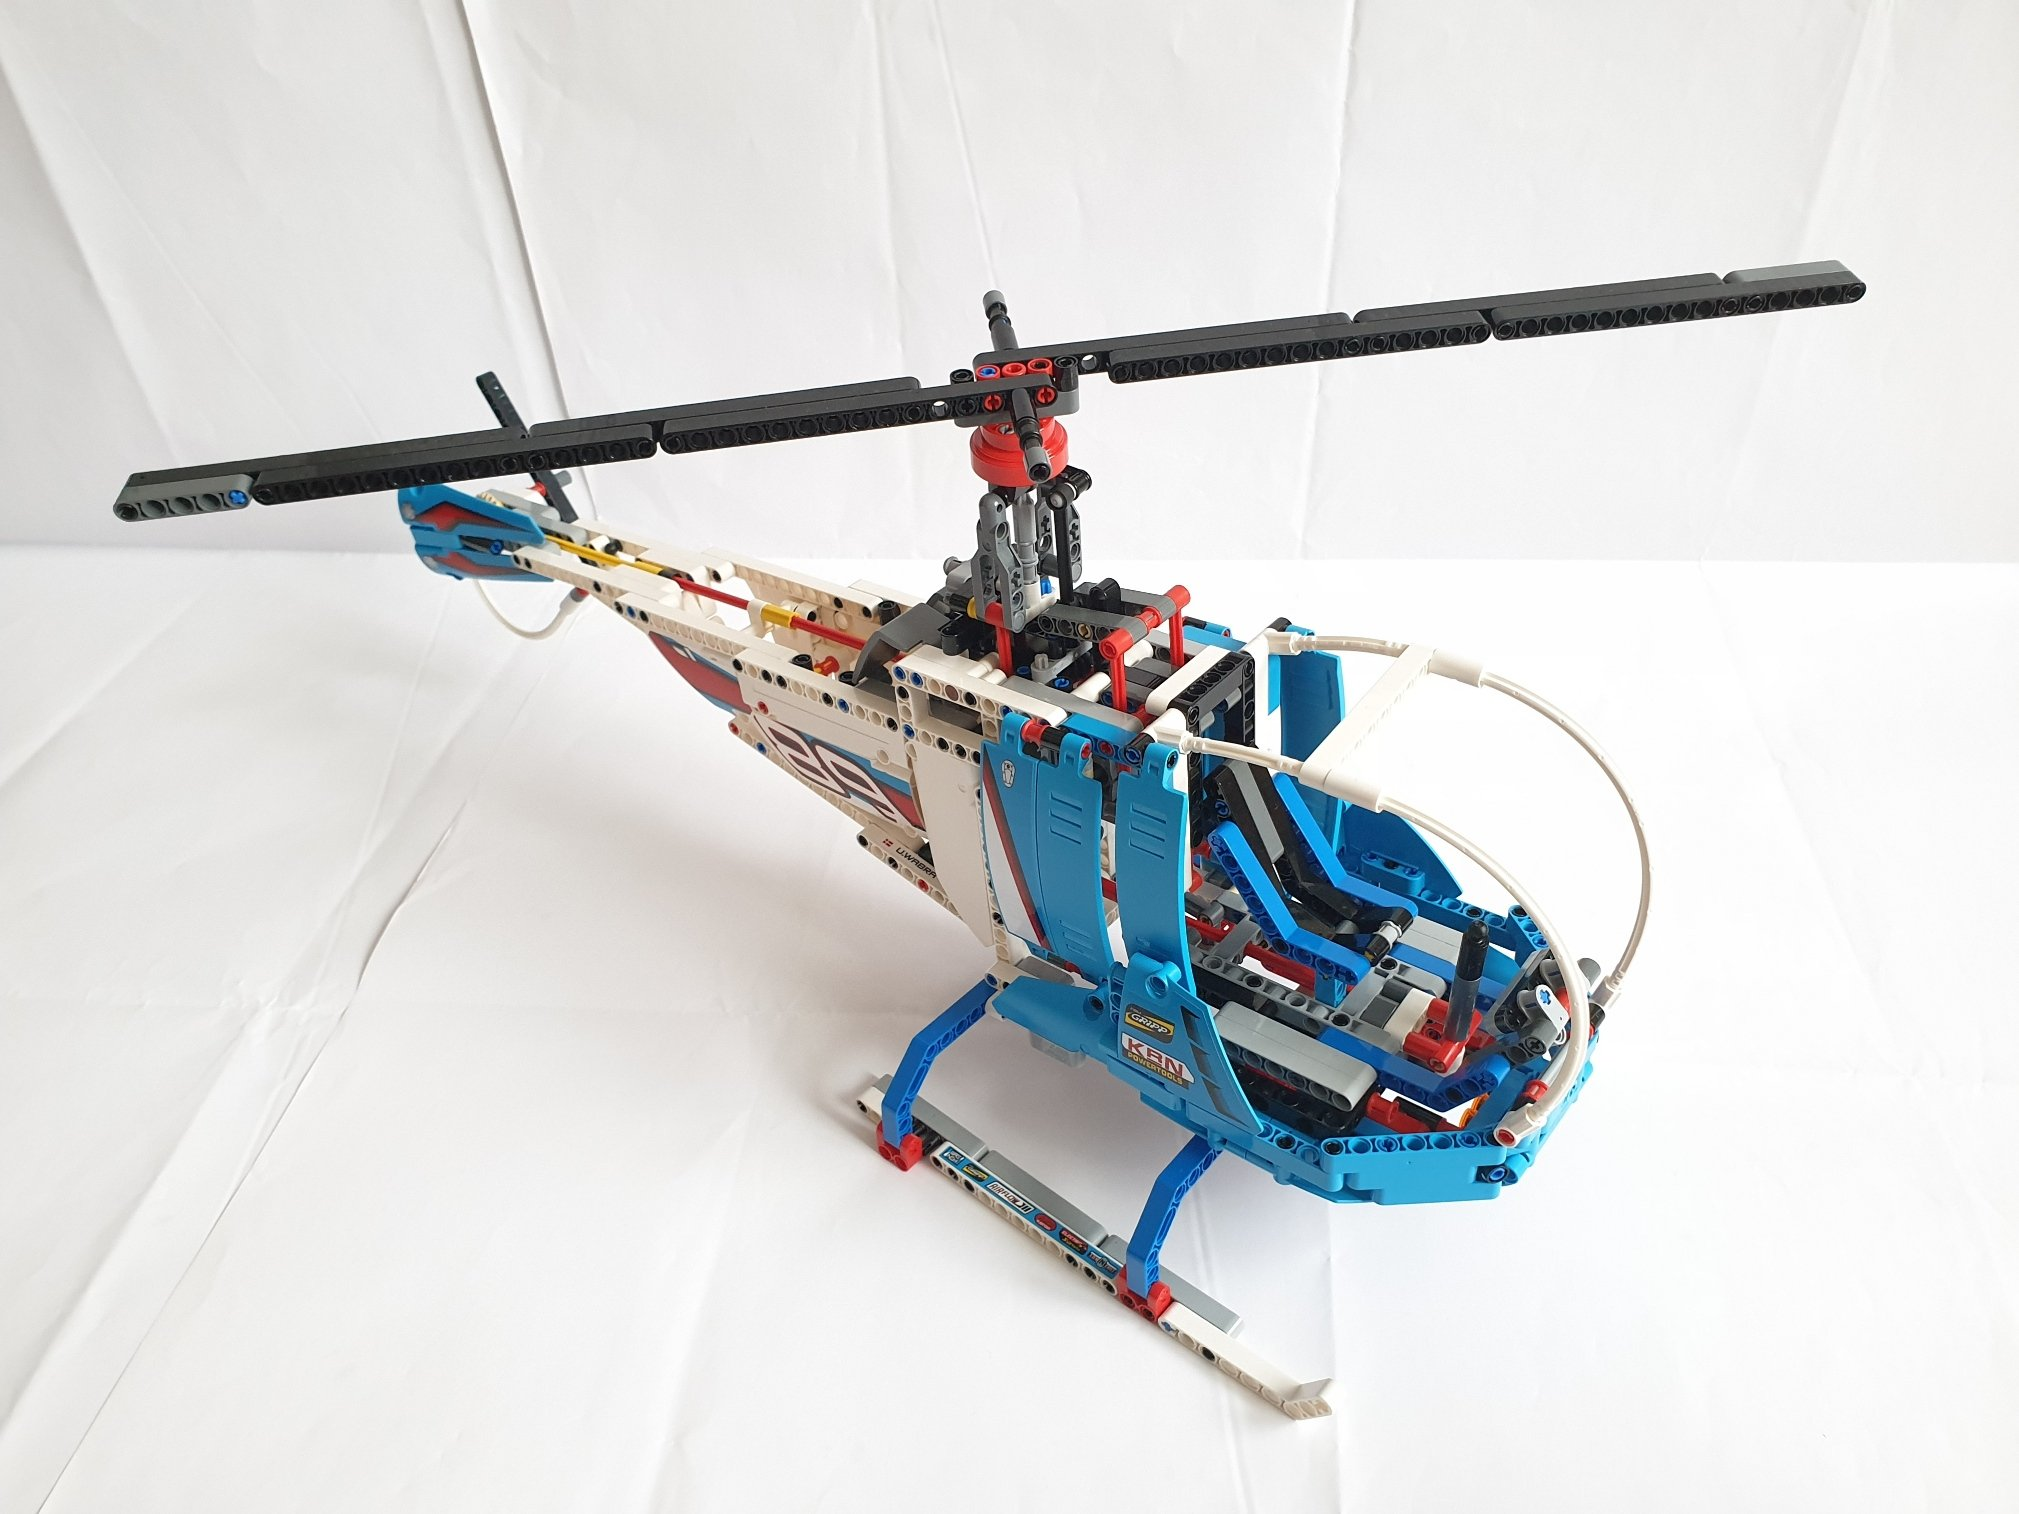 Moc 24128 42077: nighthawk helicopter by tomik